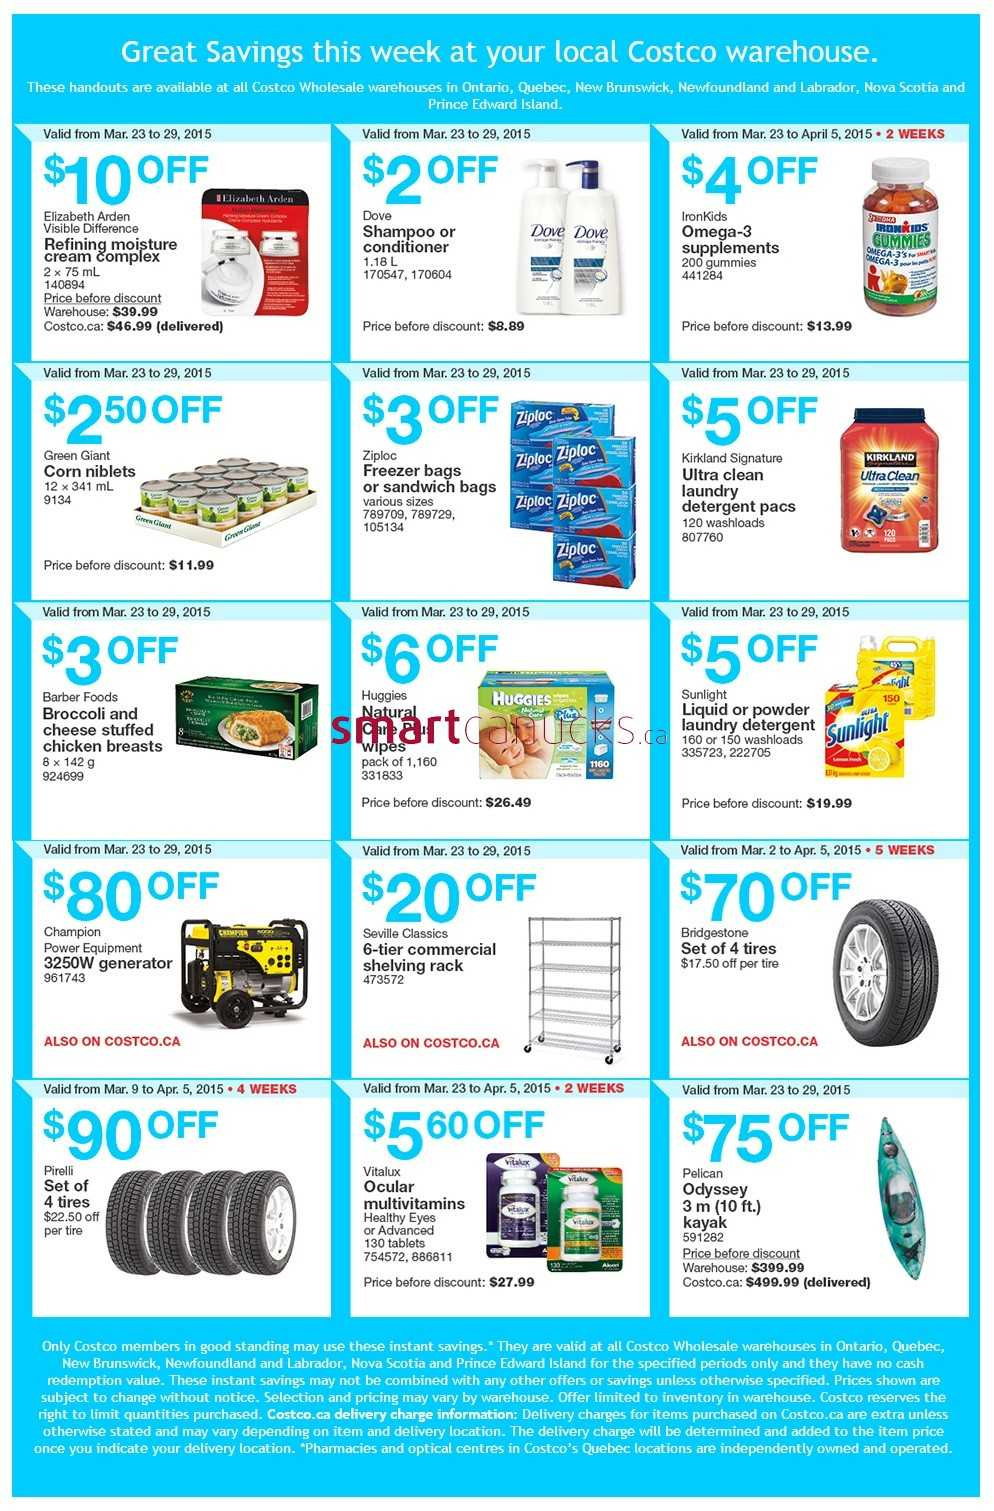 Costco weekly savings on qc amp atlantic canada march 30 to april 5